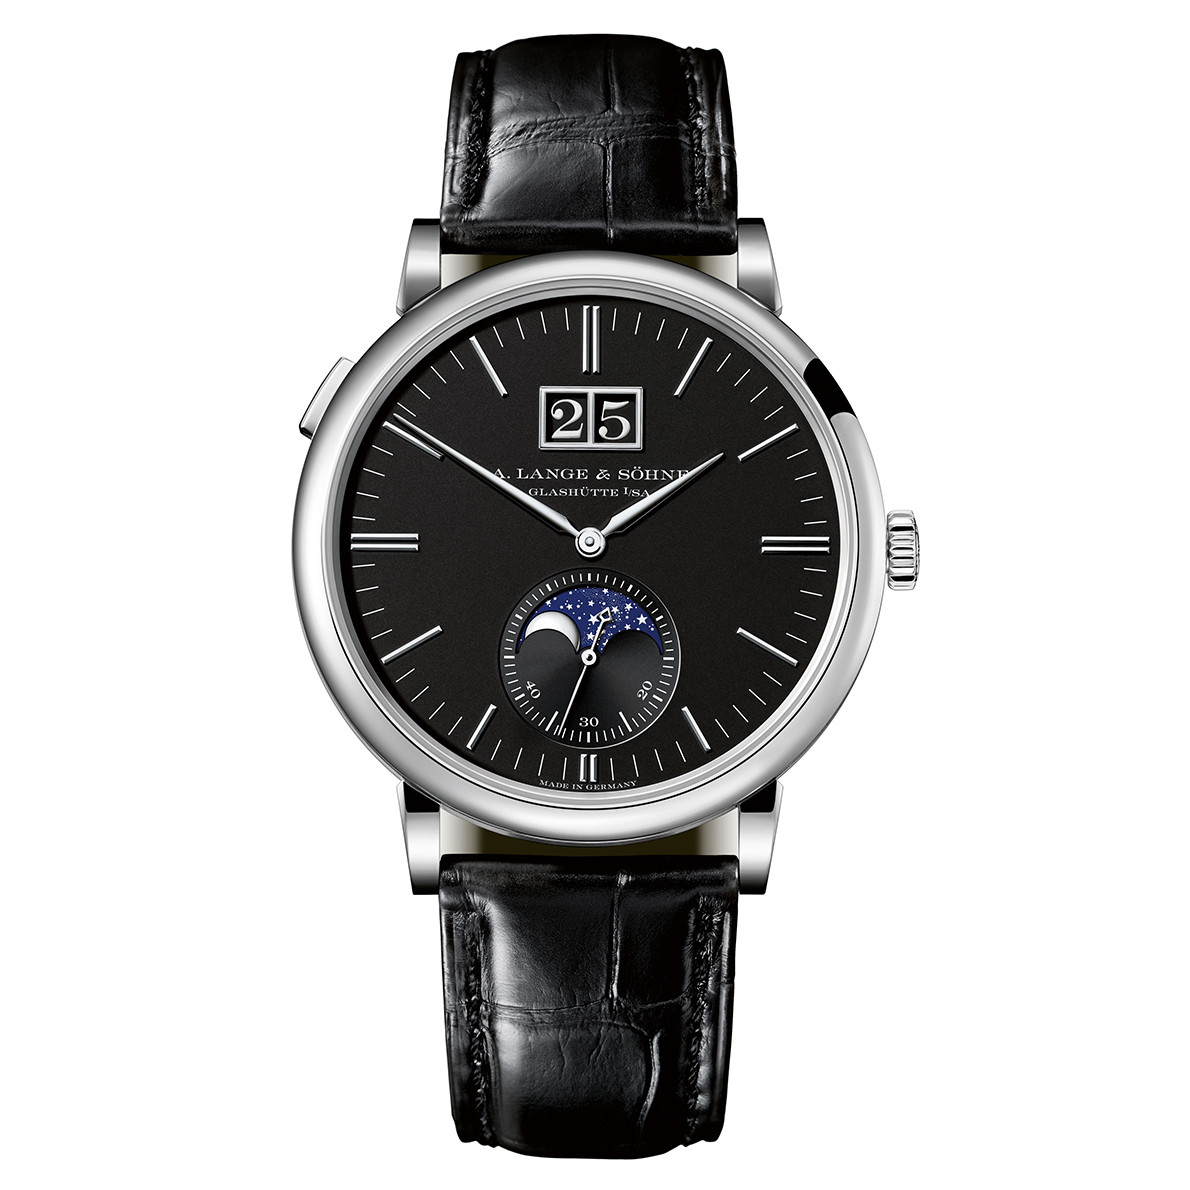 Saxonia Moon Phase White Gold (384.029)